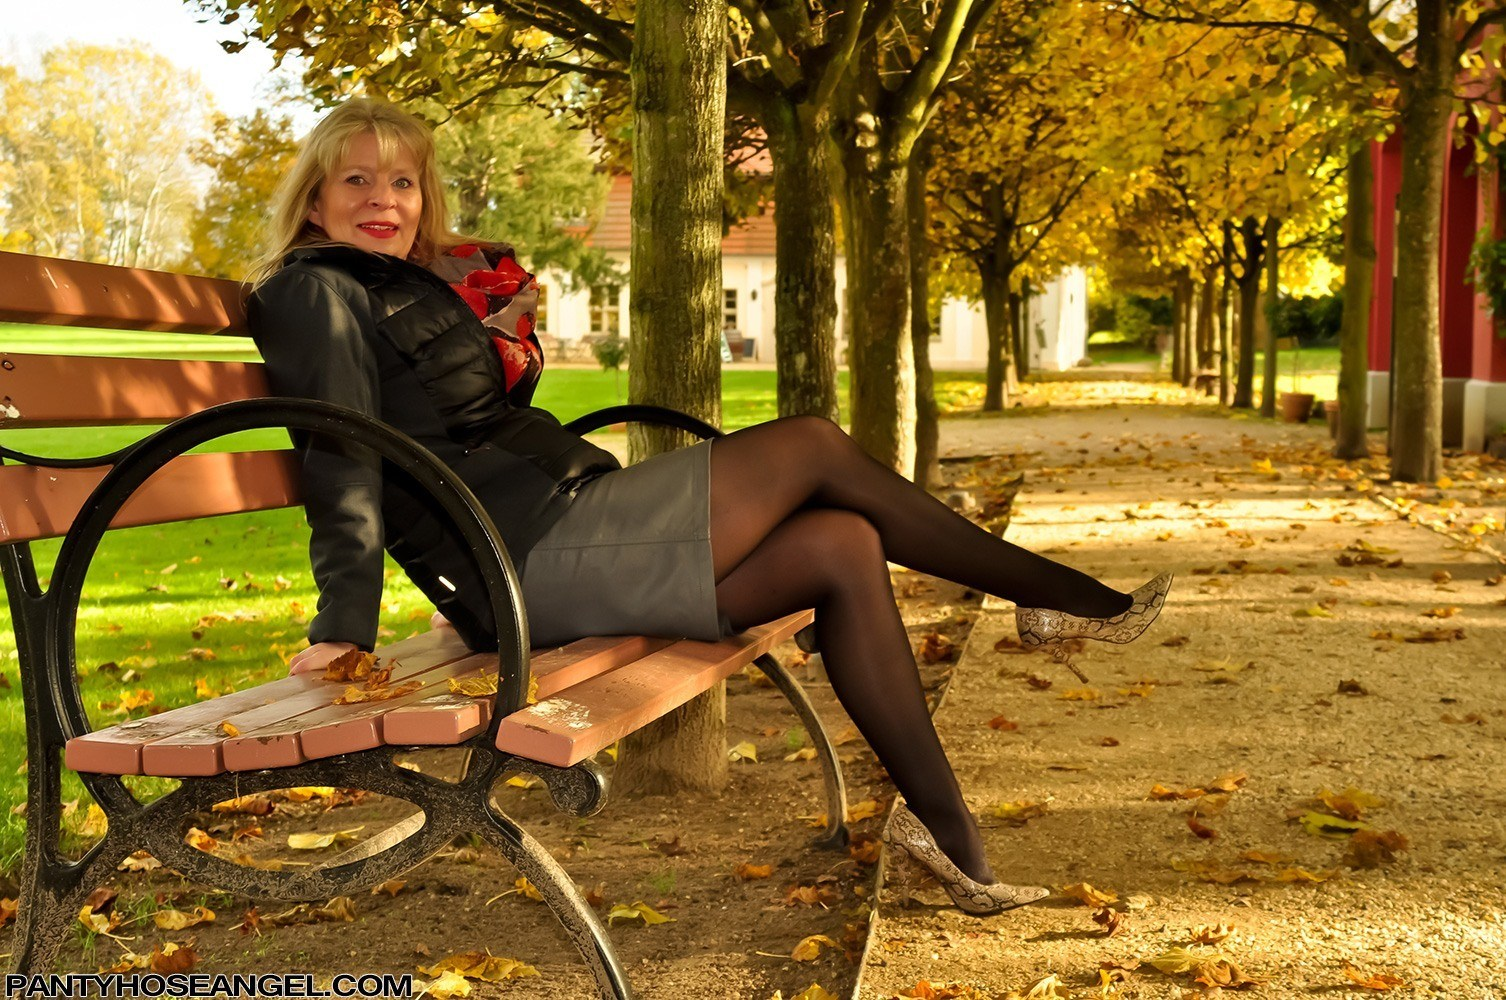 Pantyhose Angel pictures - Mature in Calzedonia Pantyhose